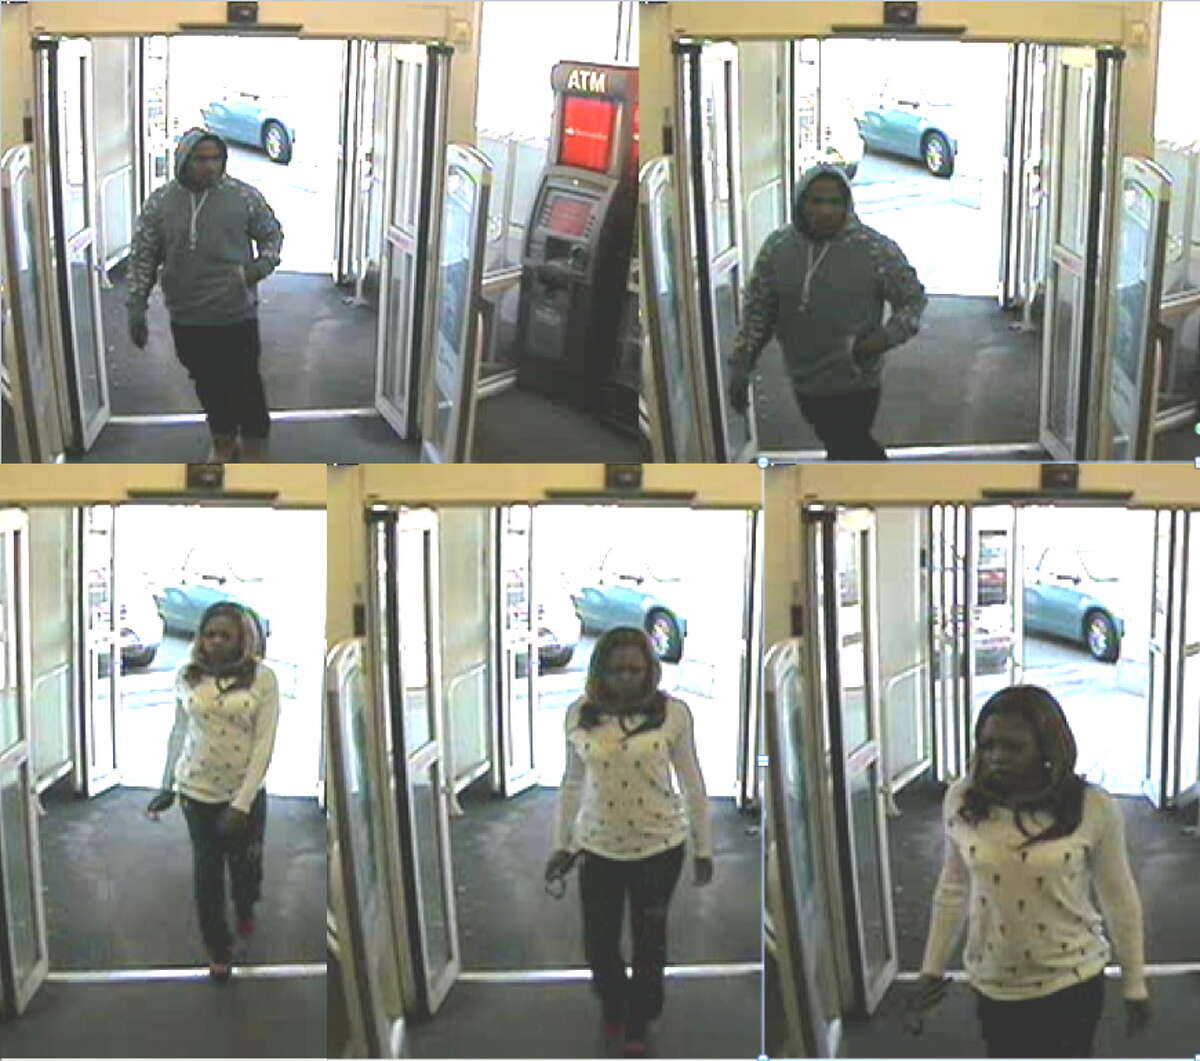 A photo taken from surveillance video shows a man and a woman police believe used fraudulent debit cards at stores in the Torrington area.